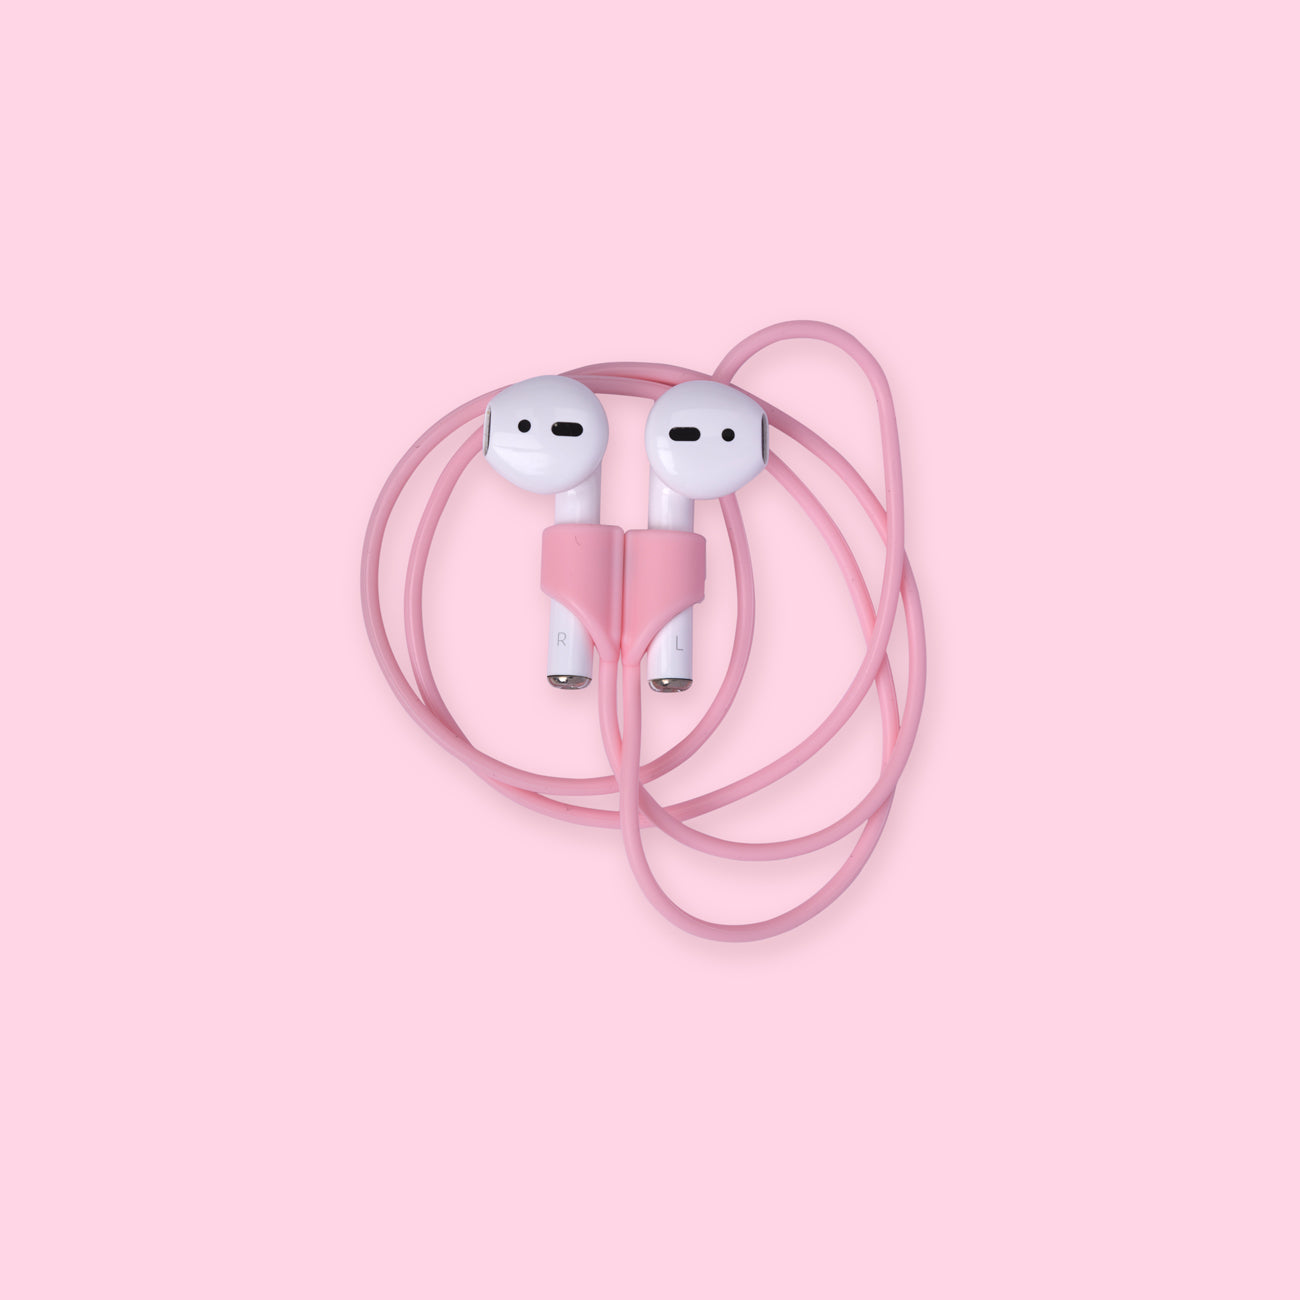 Magnetic Earphone String For Airpods - Pink